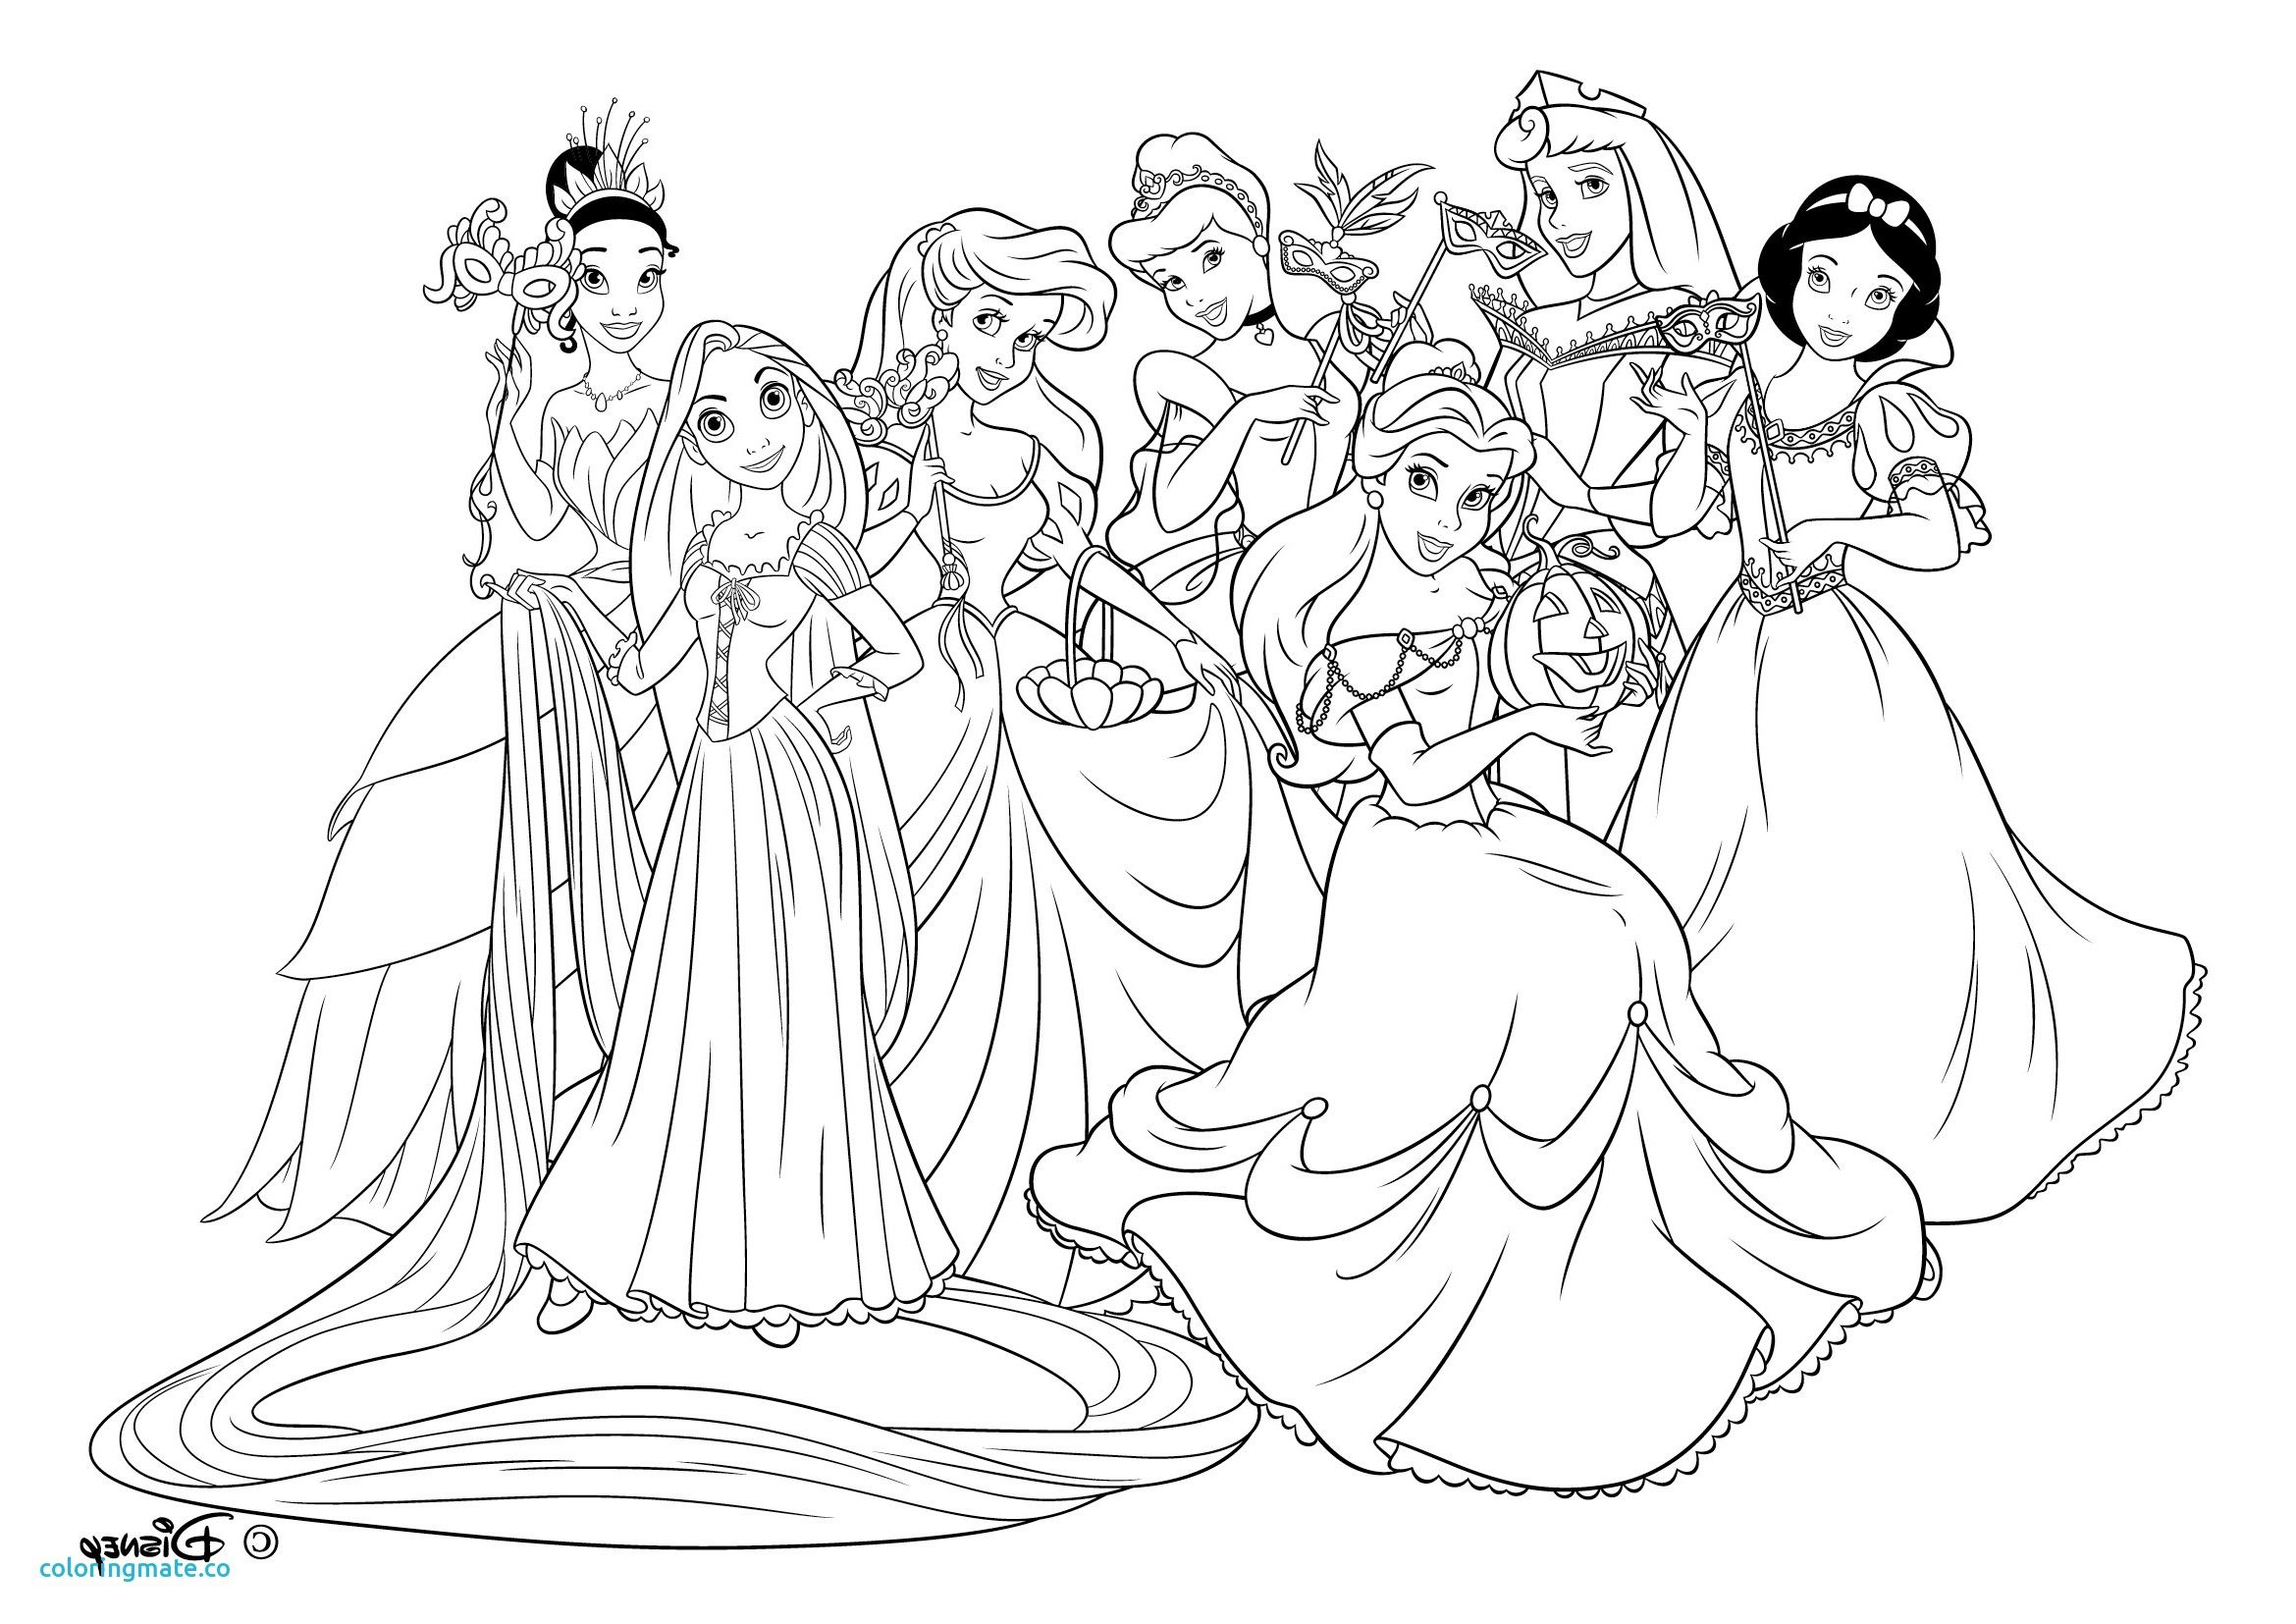 Coloriage A Imprimer Princesse.Coloriage Mandala De Princesse A Imprimer Download Coloriage